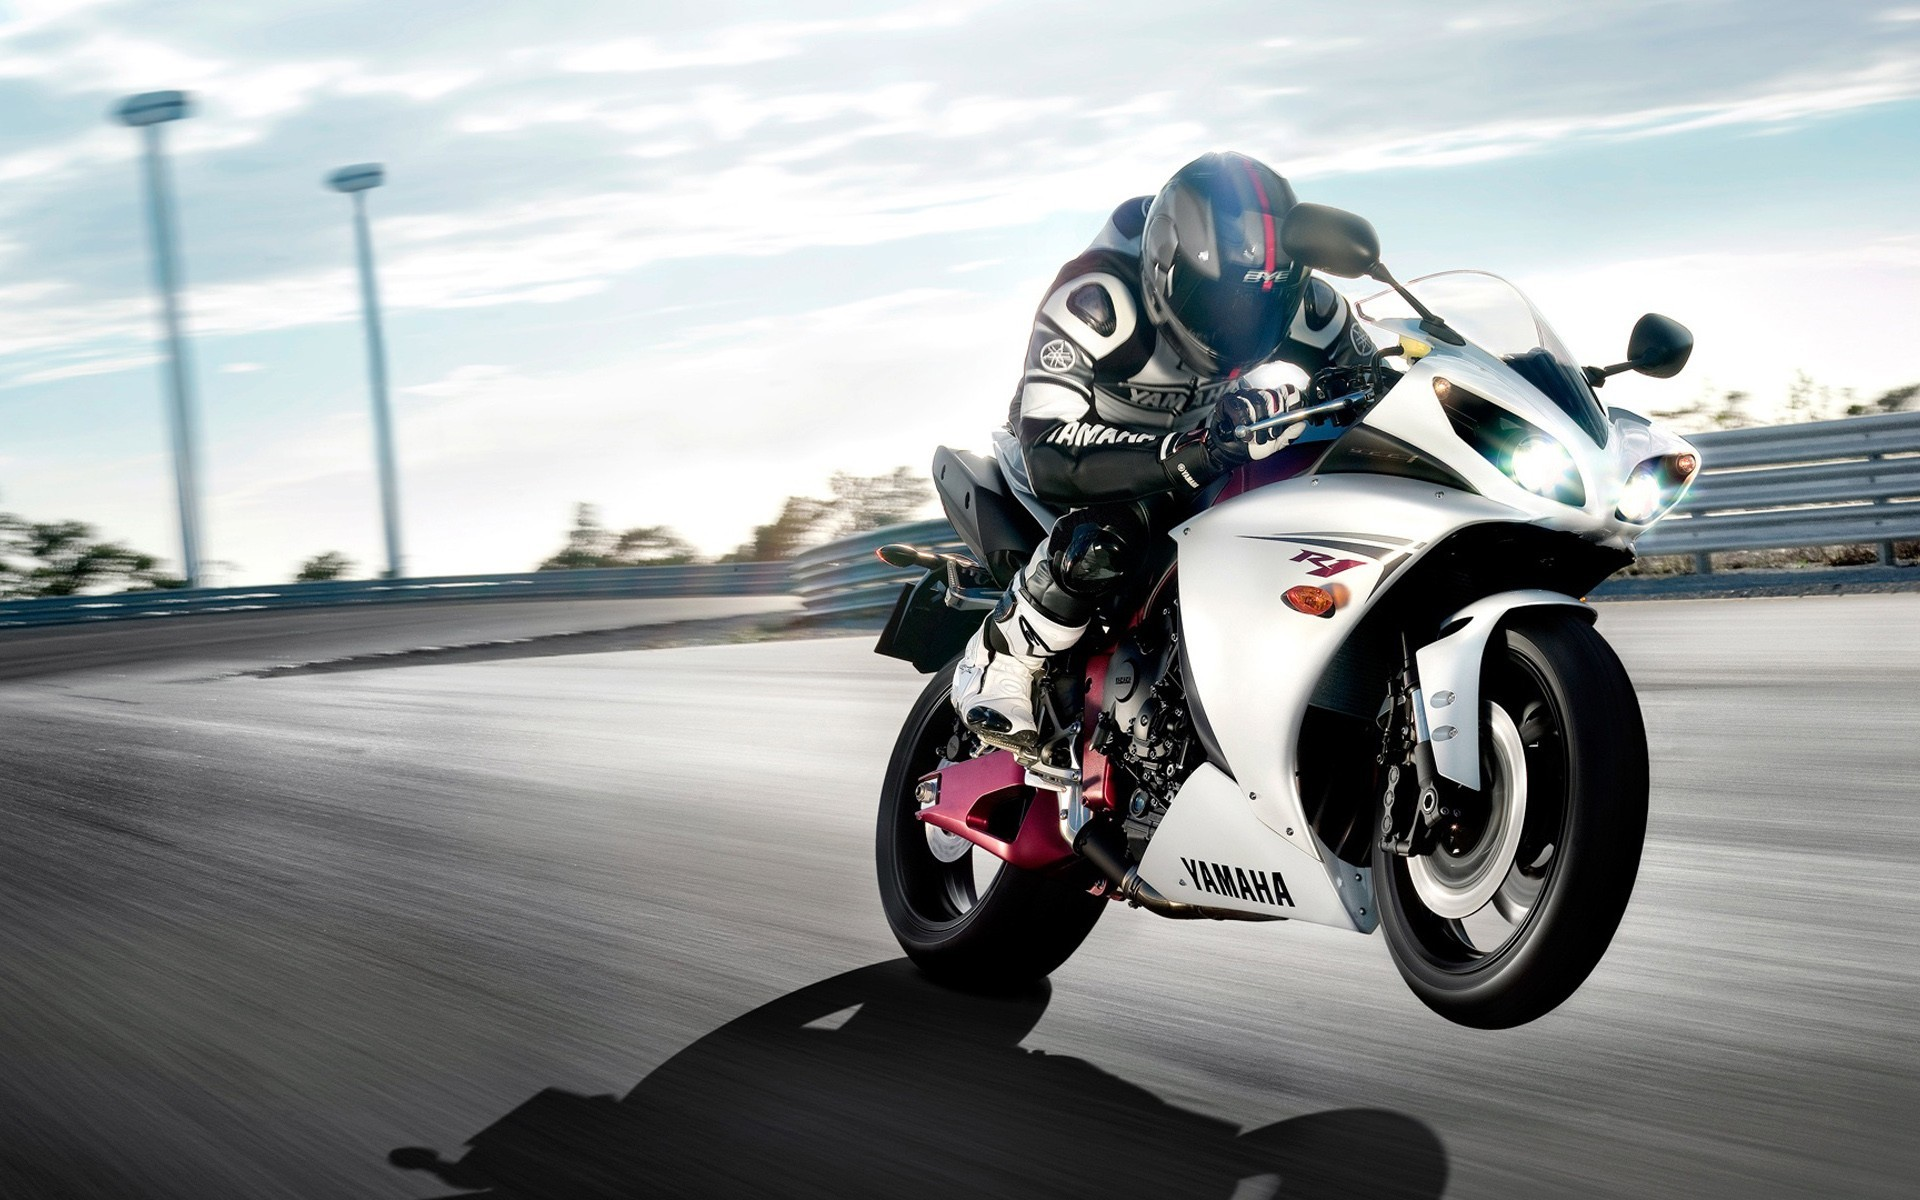 Racer motorbikes yamaha r1 HD Wallpaper